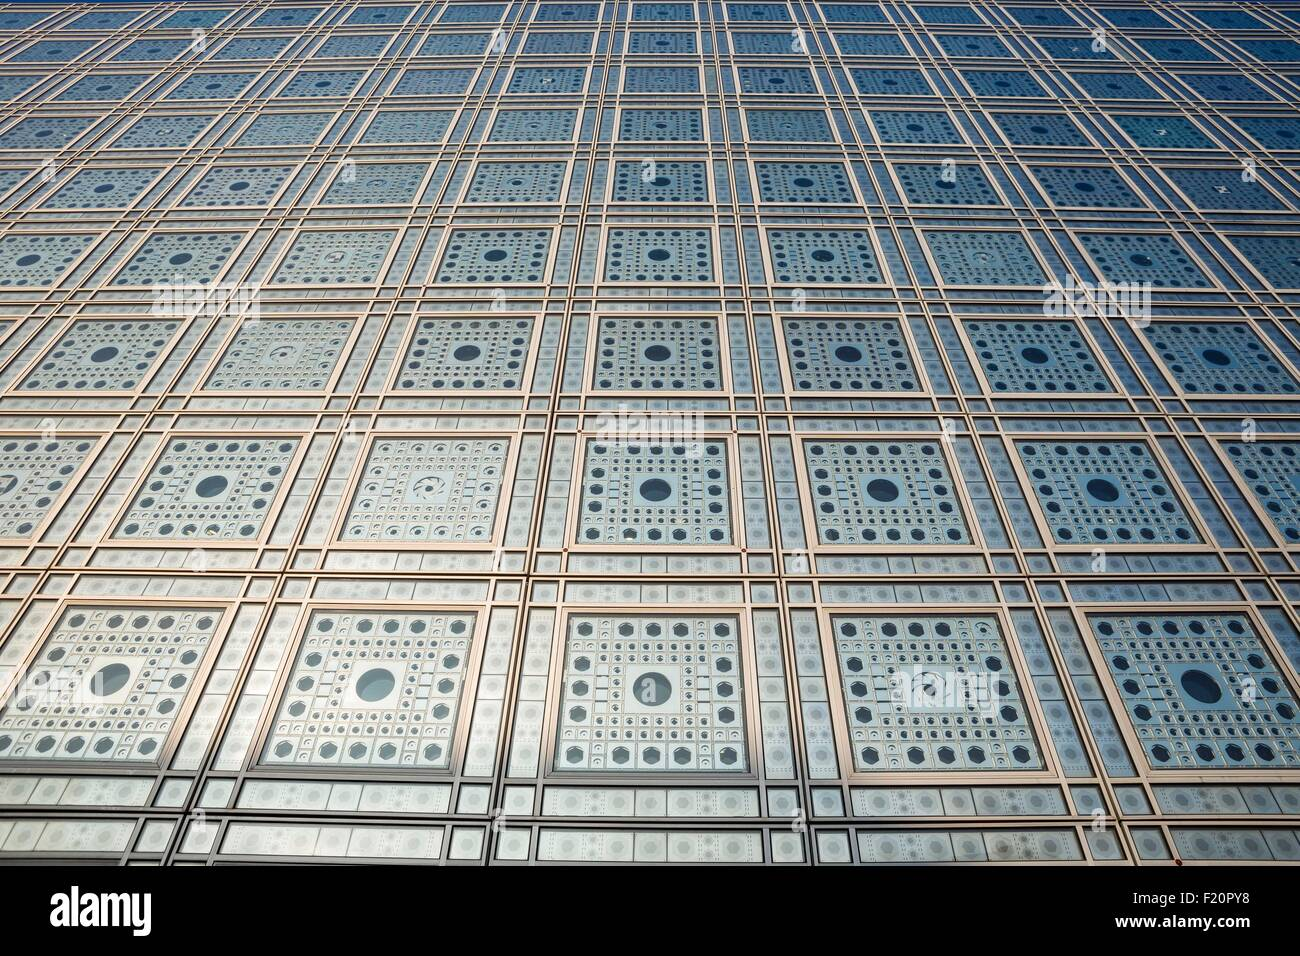 France, Paris, the Arab World Institute designed by architects Jean Nouvel and Architecture-Studio 1, detail of - Stock Image